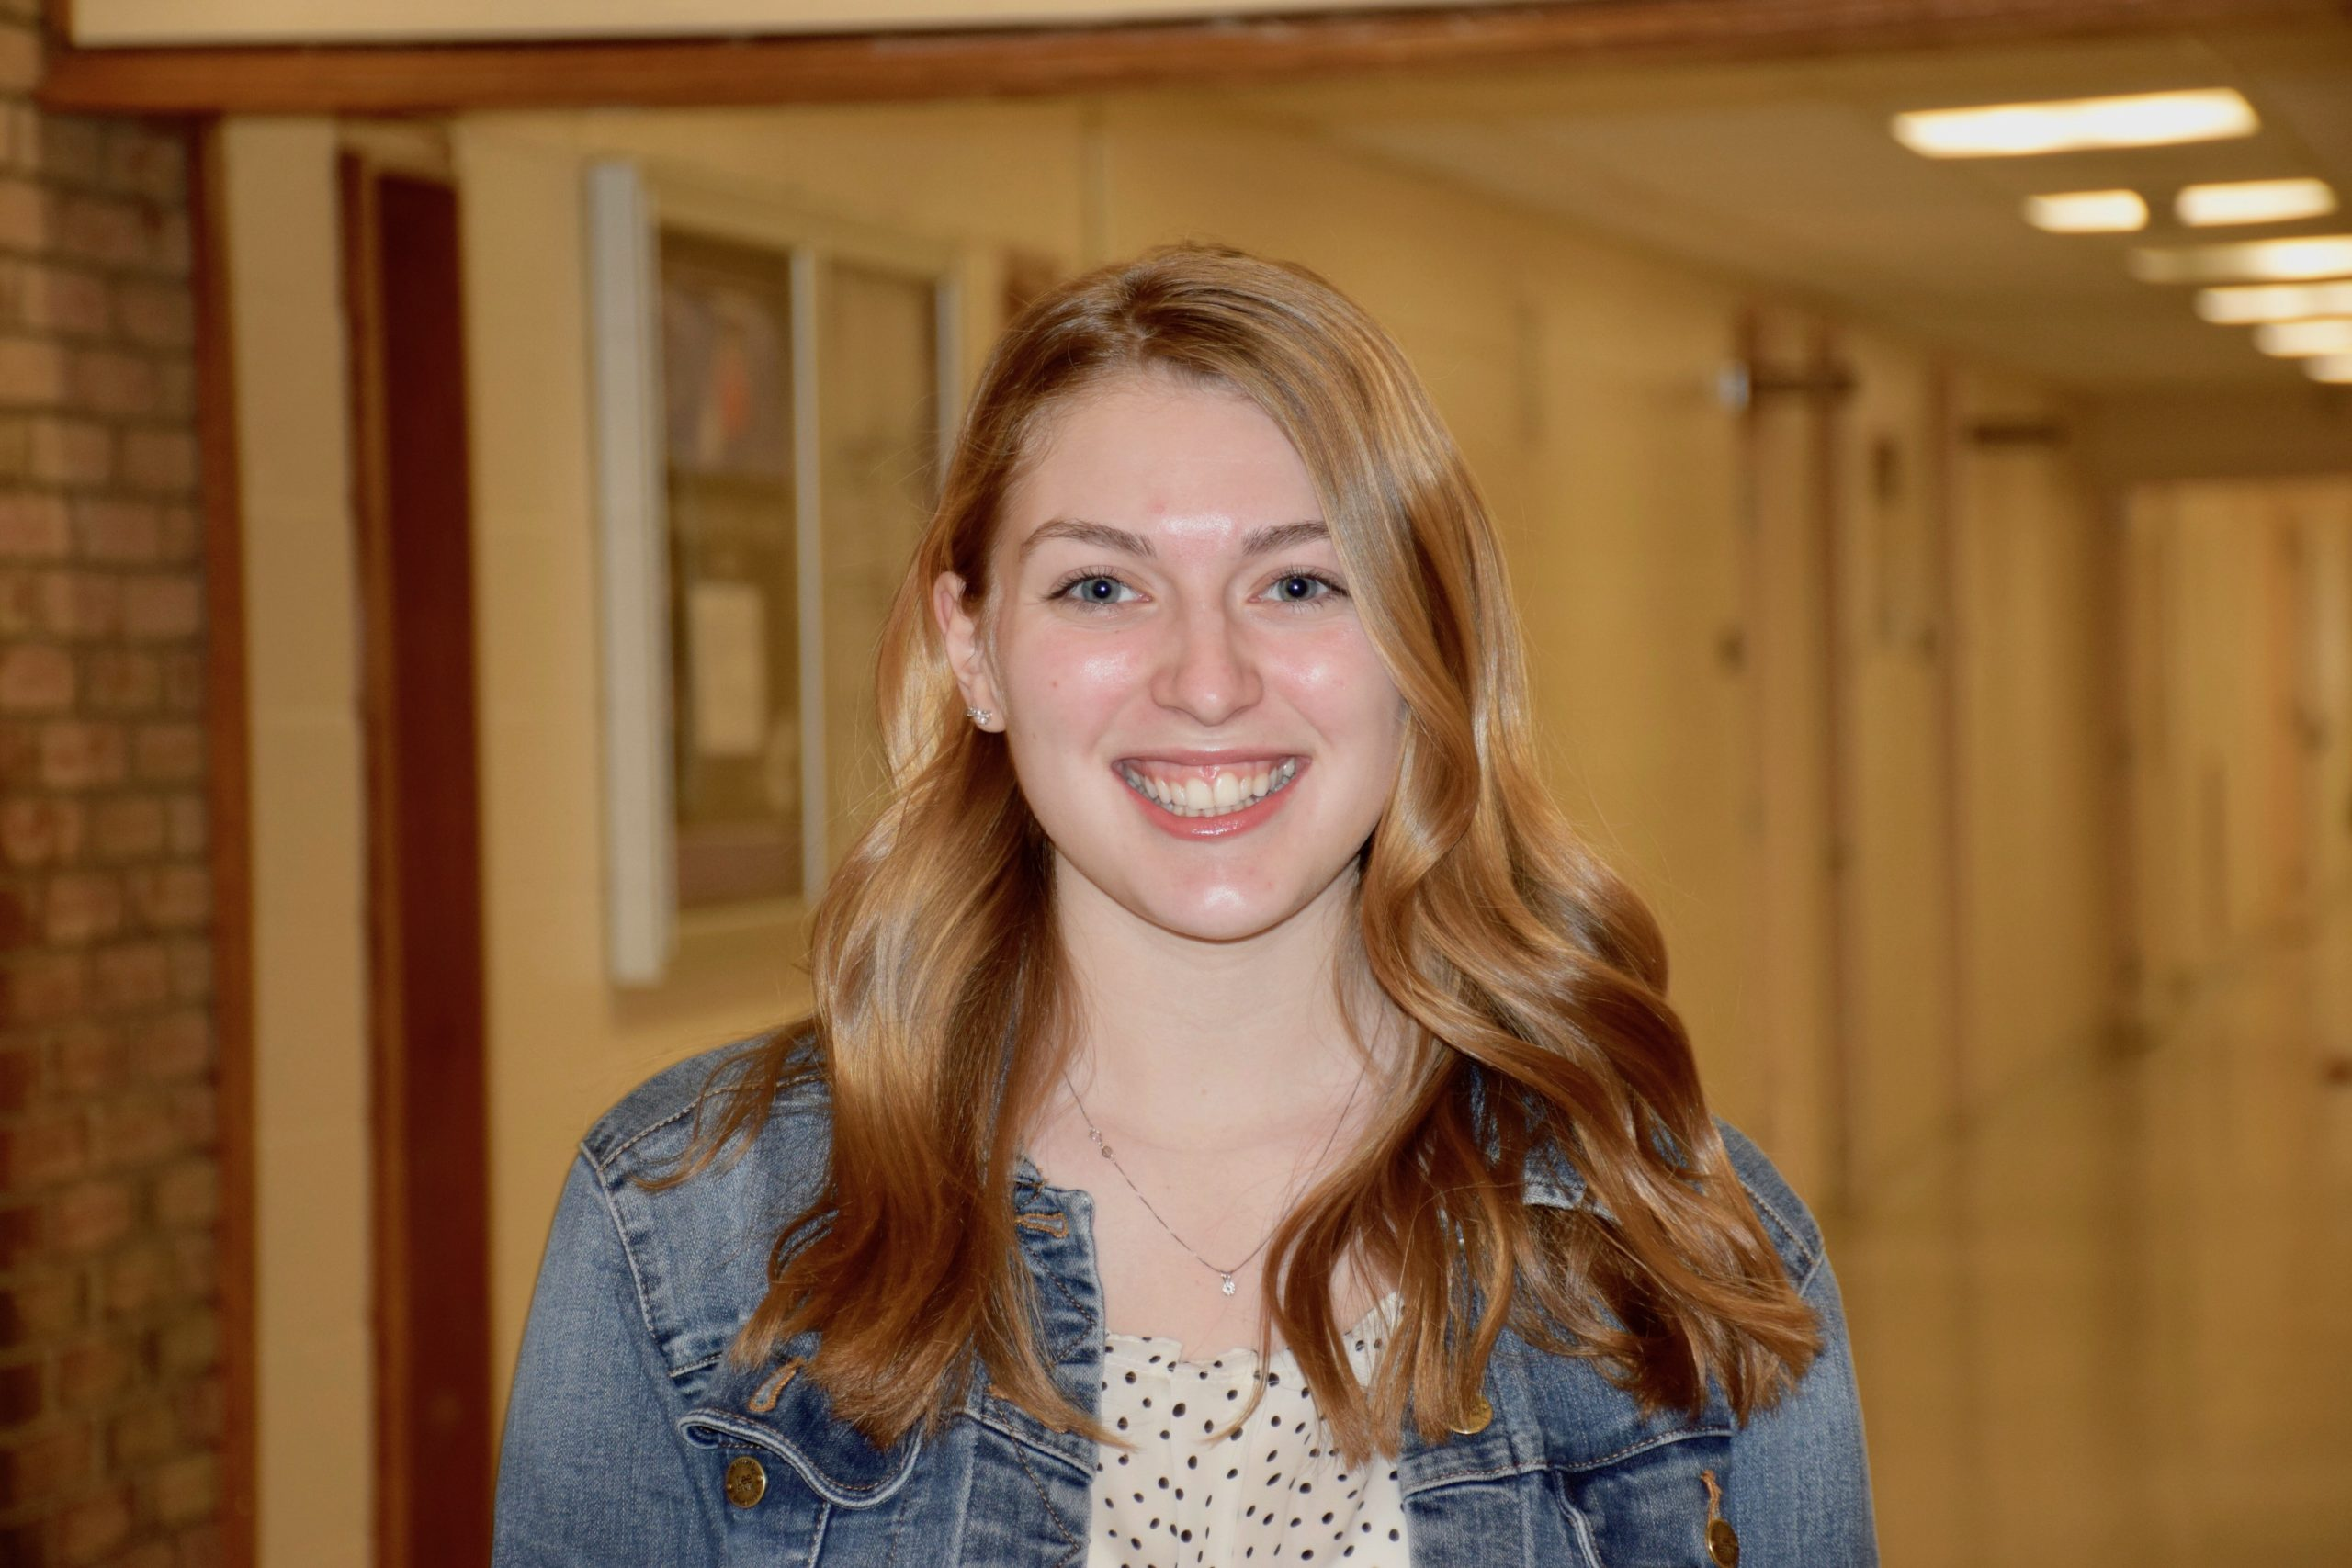 """Hampton Bays High School senior Julia Heming earned third place in the New York State VFW Voice of Democracy essay contest for her entry, """"What Makes America Great."""" In her essay, she argued that America is great for one single reason, its diversity. The daughter of a U.S. Navy vet,she has ancestors on both parents' sides who can be traced back to the Mayflower, as well as an ancestor who was an original signer of the Declaration of Independence. She is editor-in-chief of her school's newspaper, The Tide, has been an intern for The Southampton Press. She is also a member of her school's Key Club and coaches cheer at Our Lady of the Hamptons Regional Catholic School and plans to study journalism in college."""